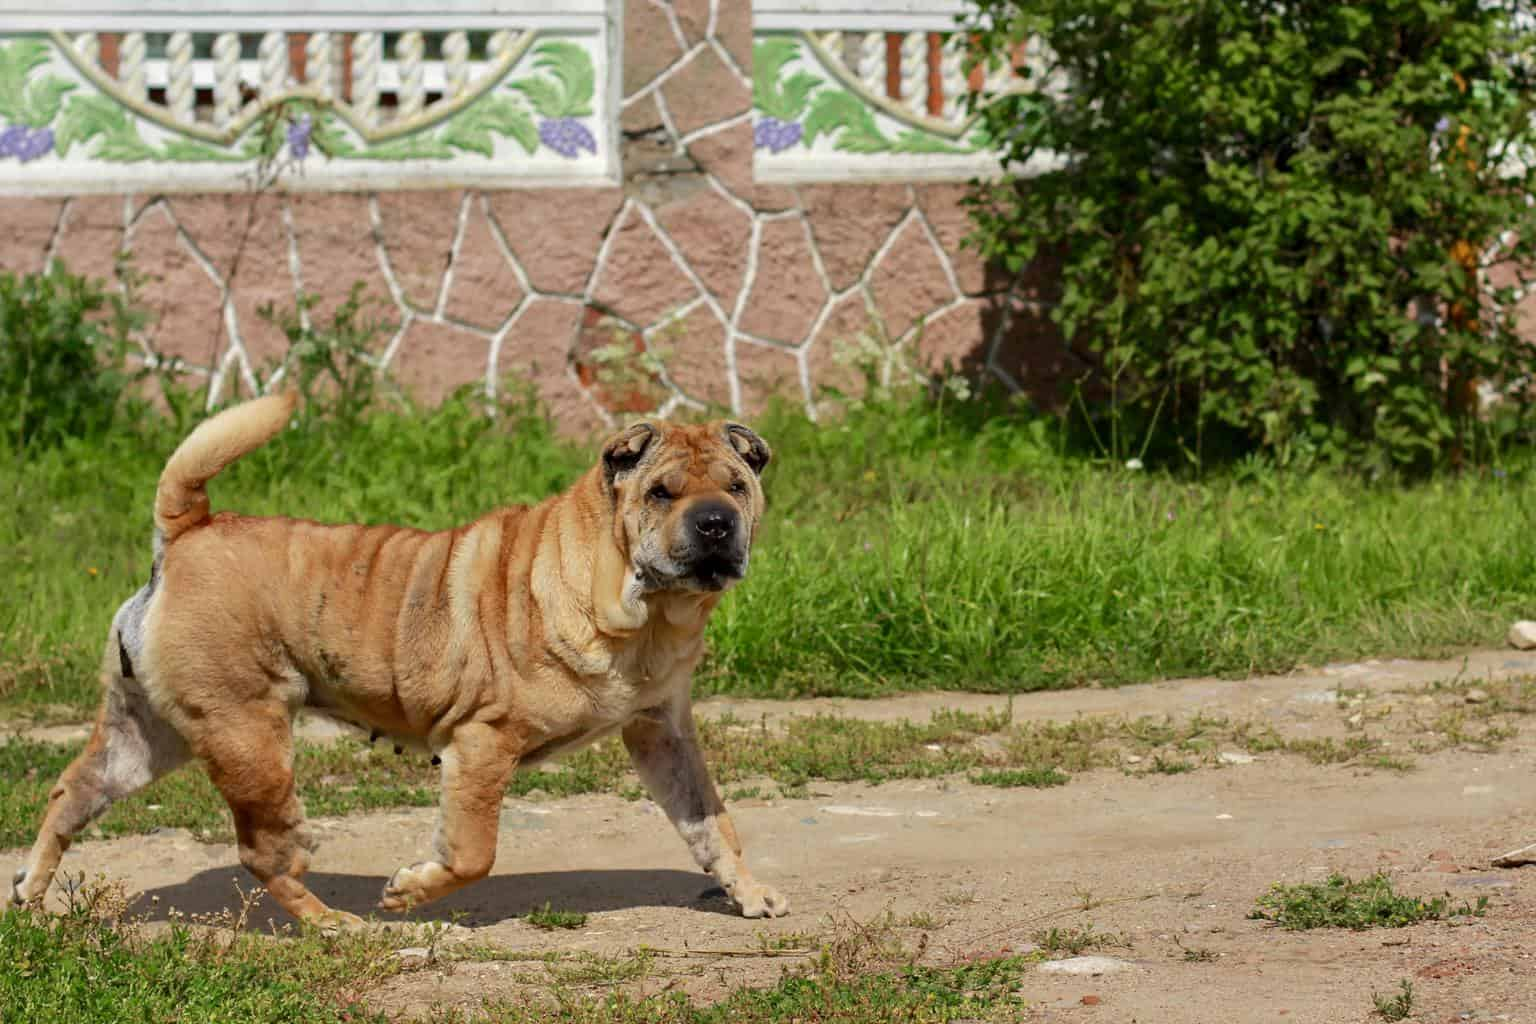 A beautiful, young, red Chinese Shar Pei dog walking on the rural road.